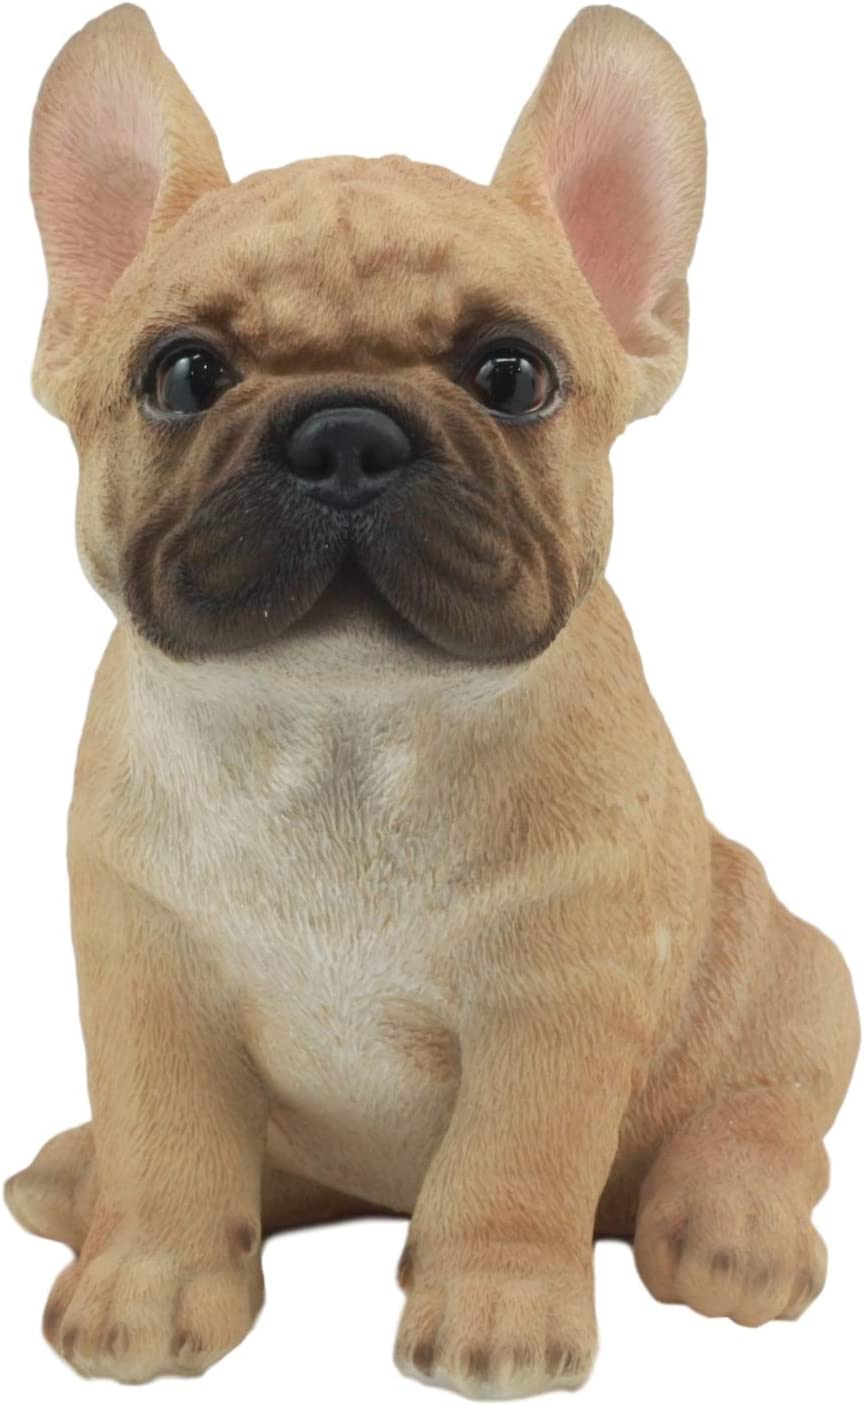 Ebros Realistic Lifelike French Bulldog Puppy Statue 7 Tall Frenchie Figurine Dog Animal Collectible